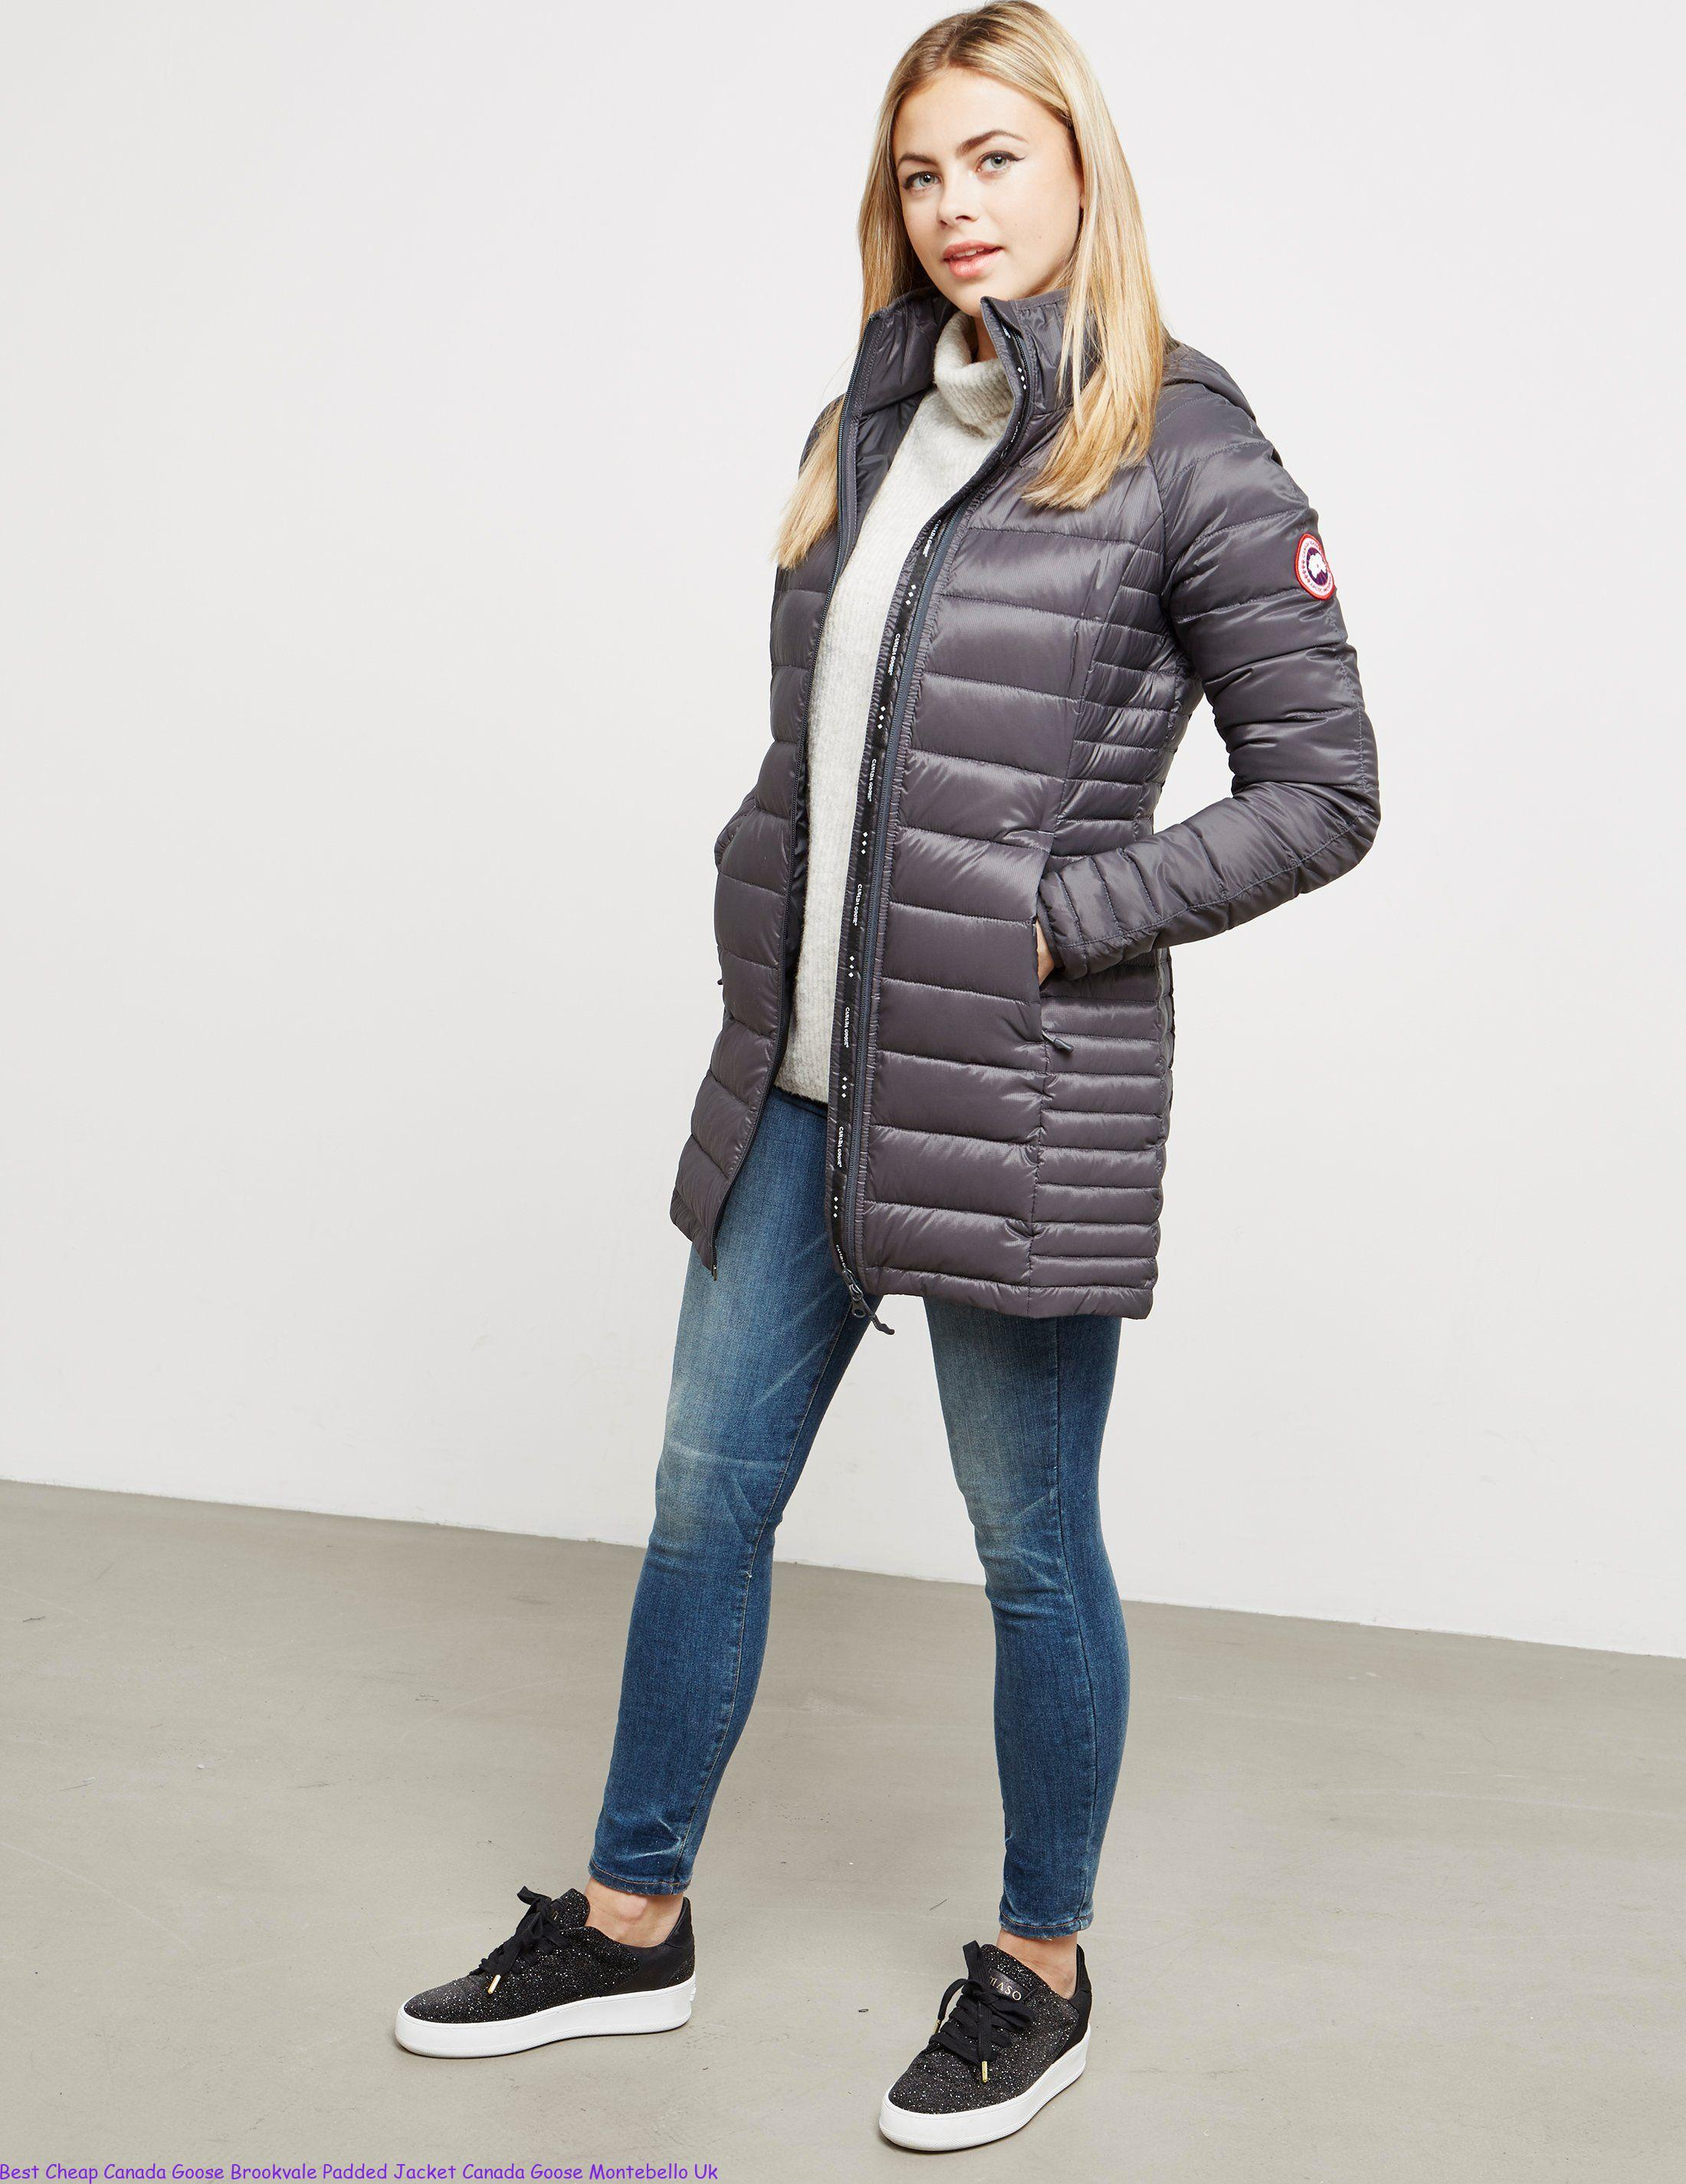 0c7e5501523 Best Cheap Canada Goose Brookvale Padded Jacket Canada Goose Montebello Uk  – Cheap Canada Goose Outlet Sale | Goose You